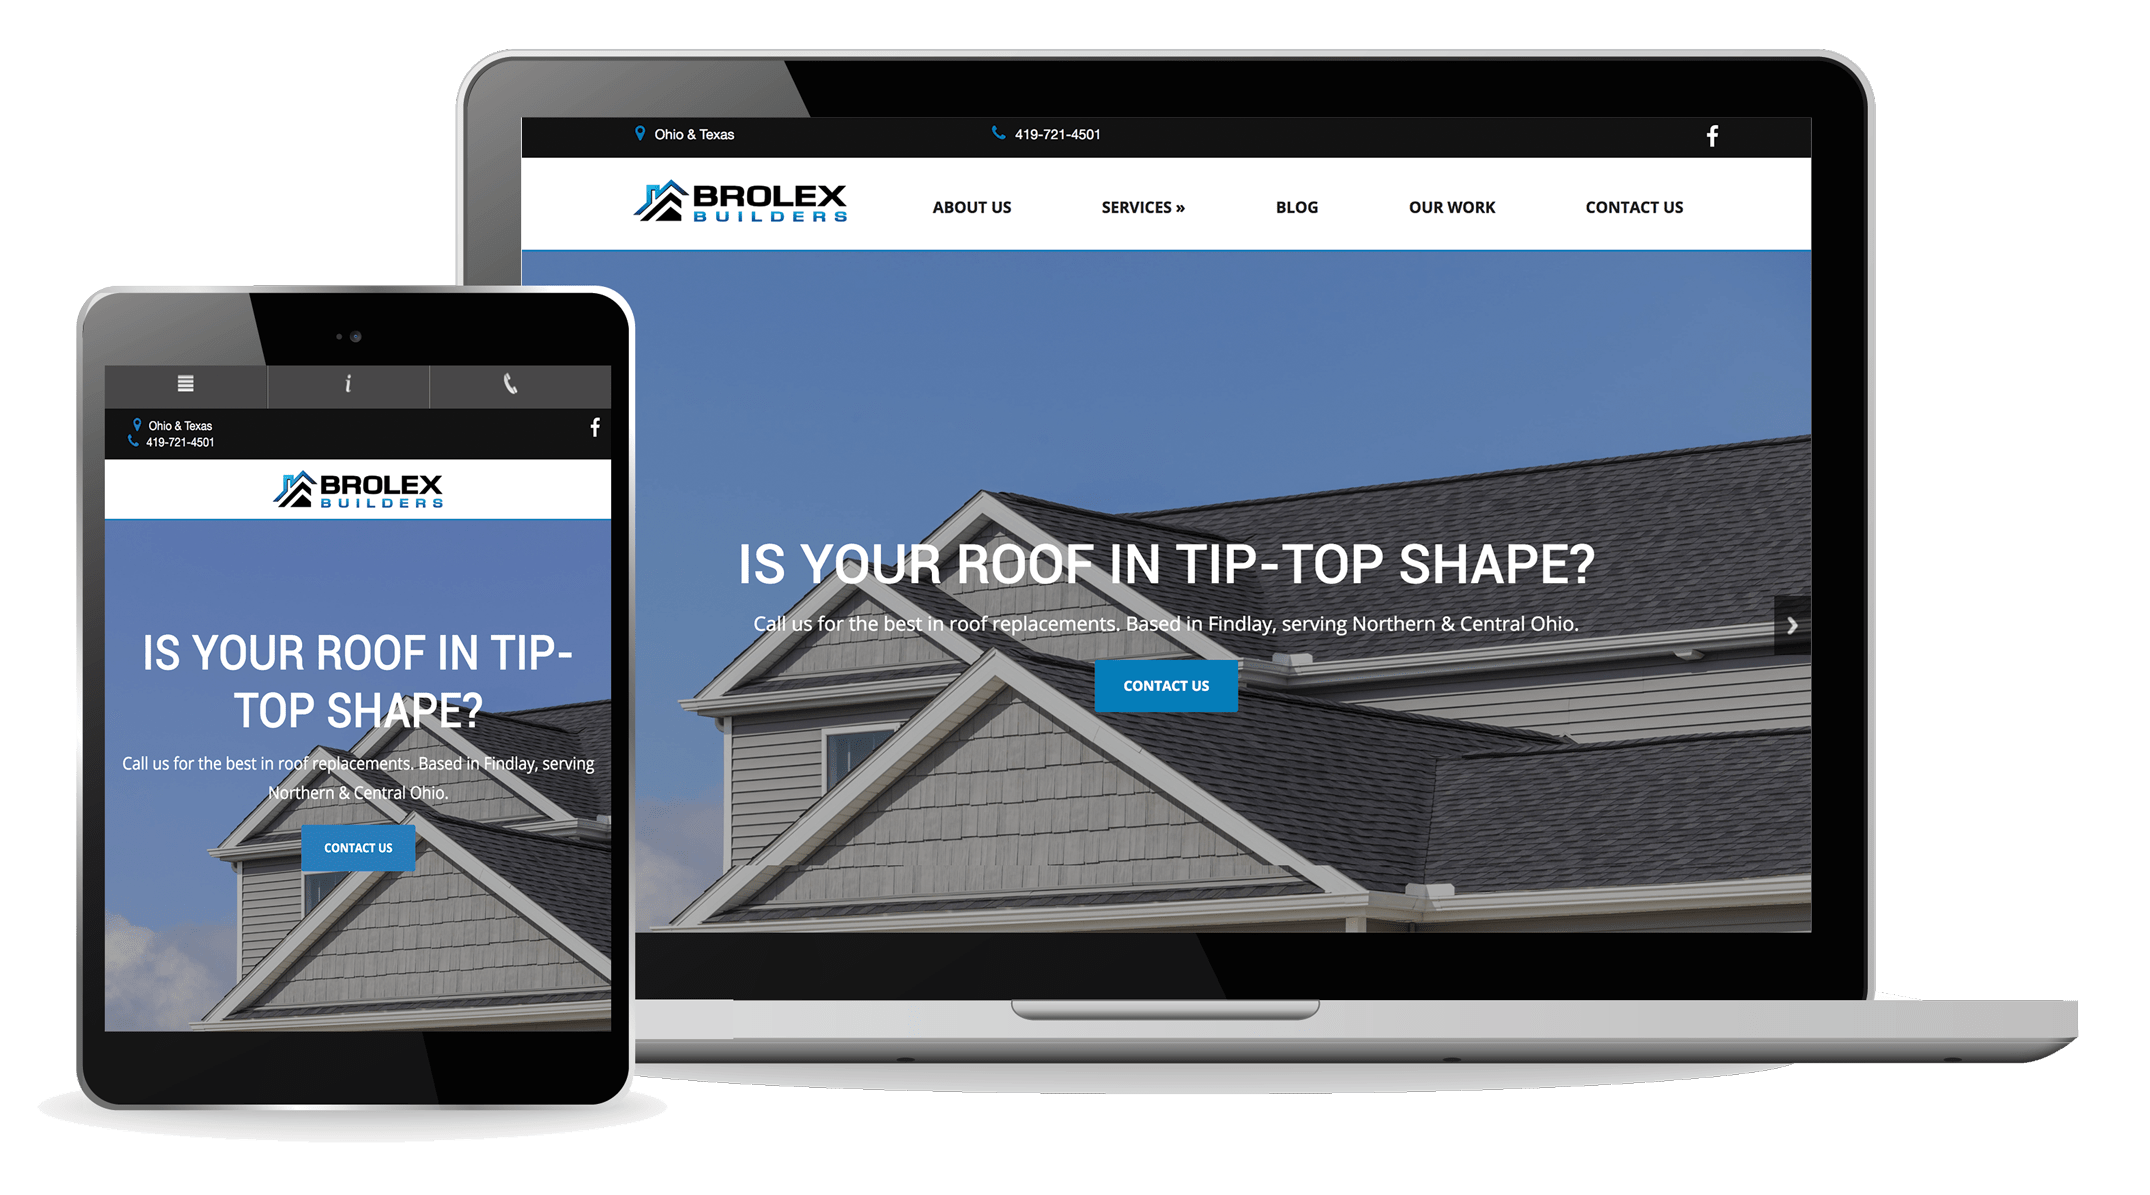 Brolex Builders Site Launch | Virteom CMS